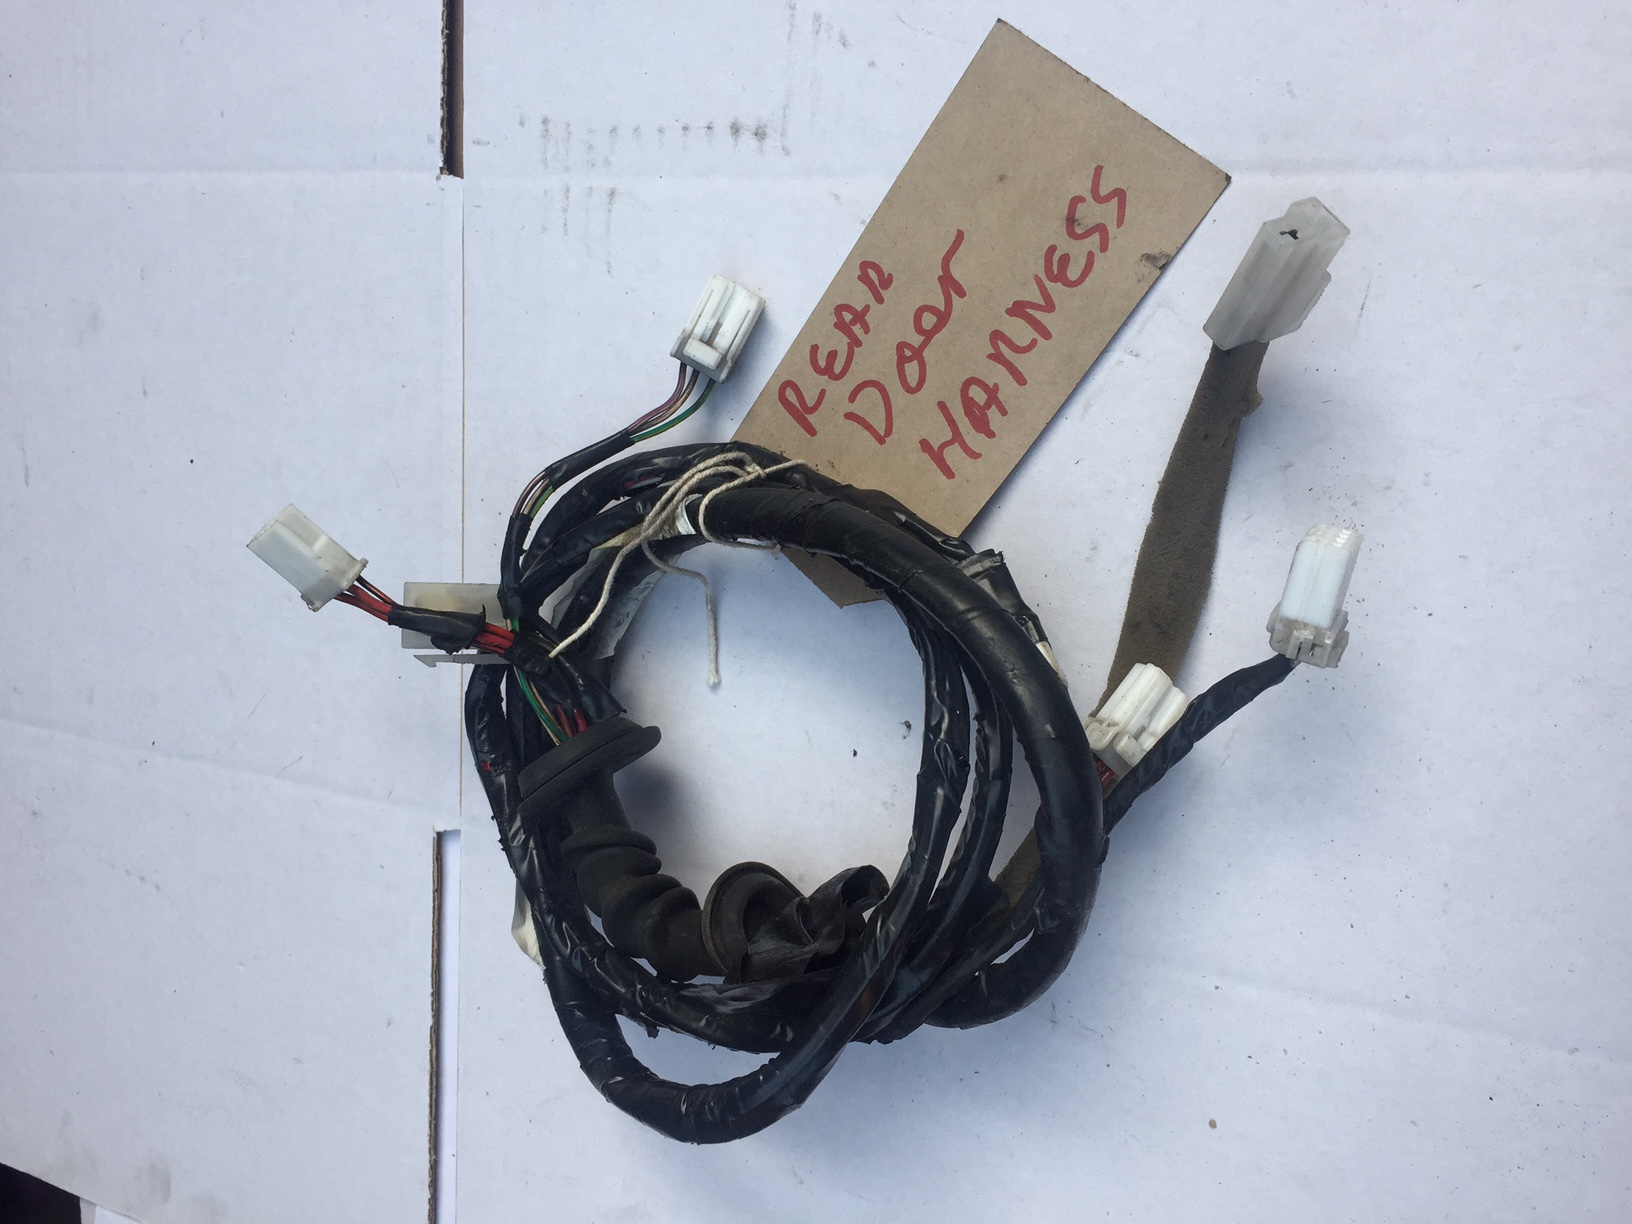 rear door wiring harness bongospares co uk rh bongospares co uk wiring harness company wiring harness company